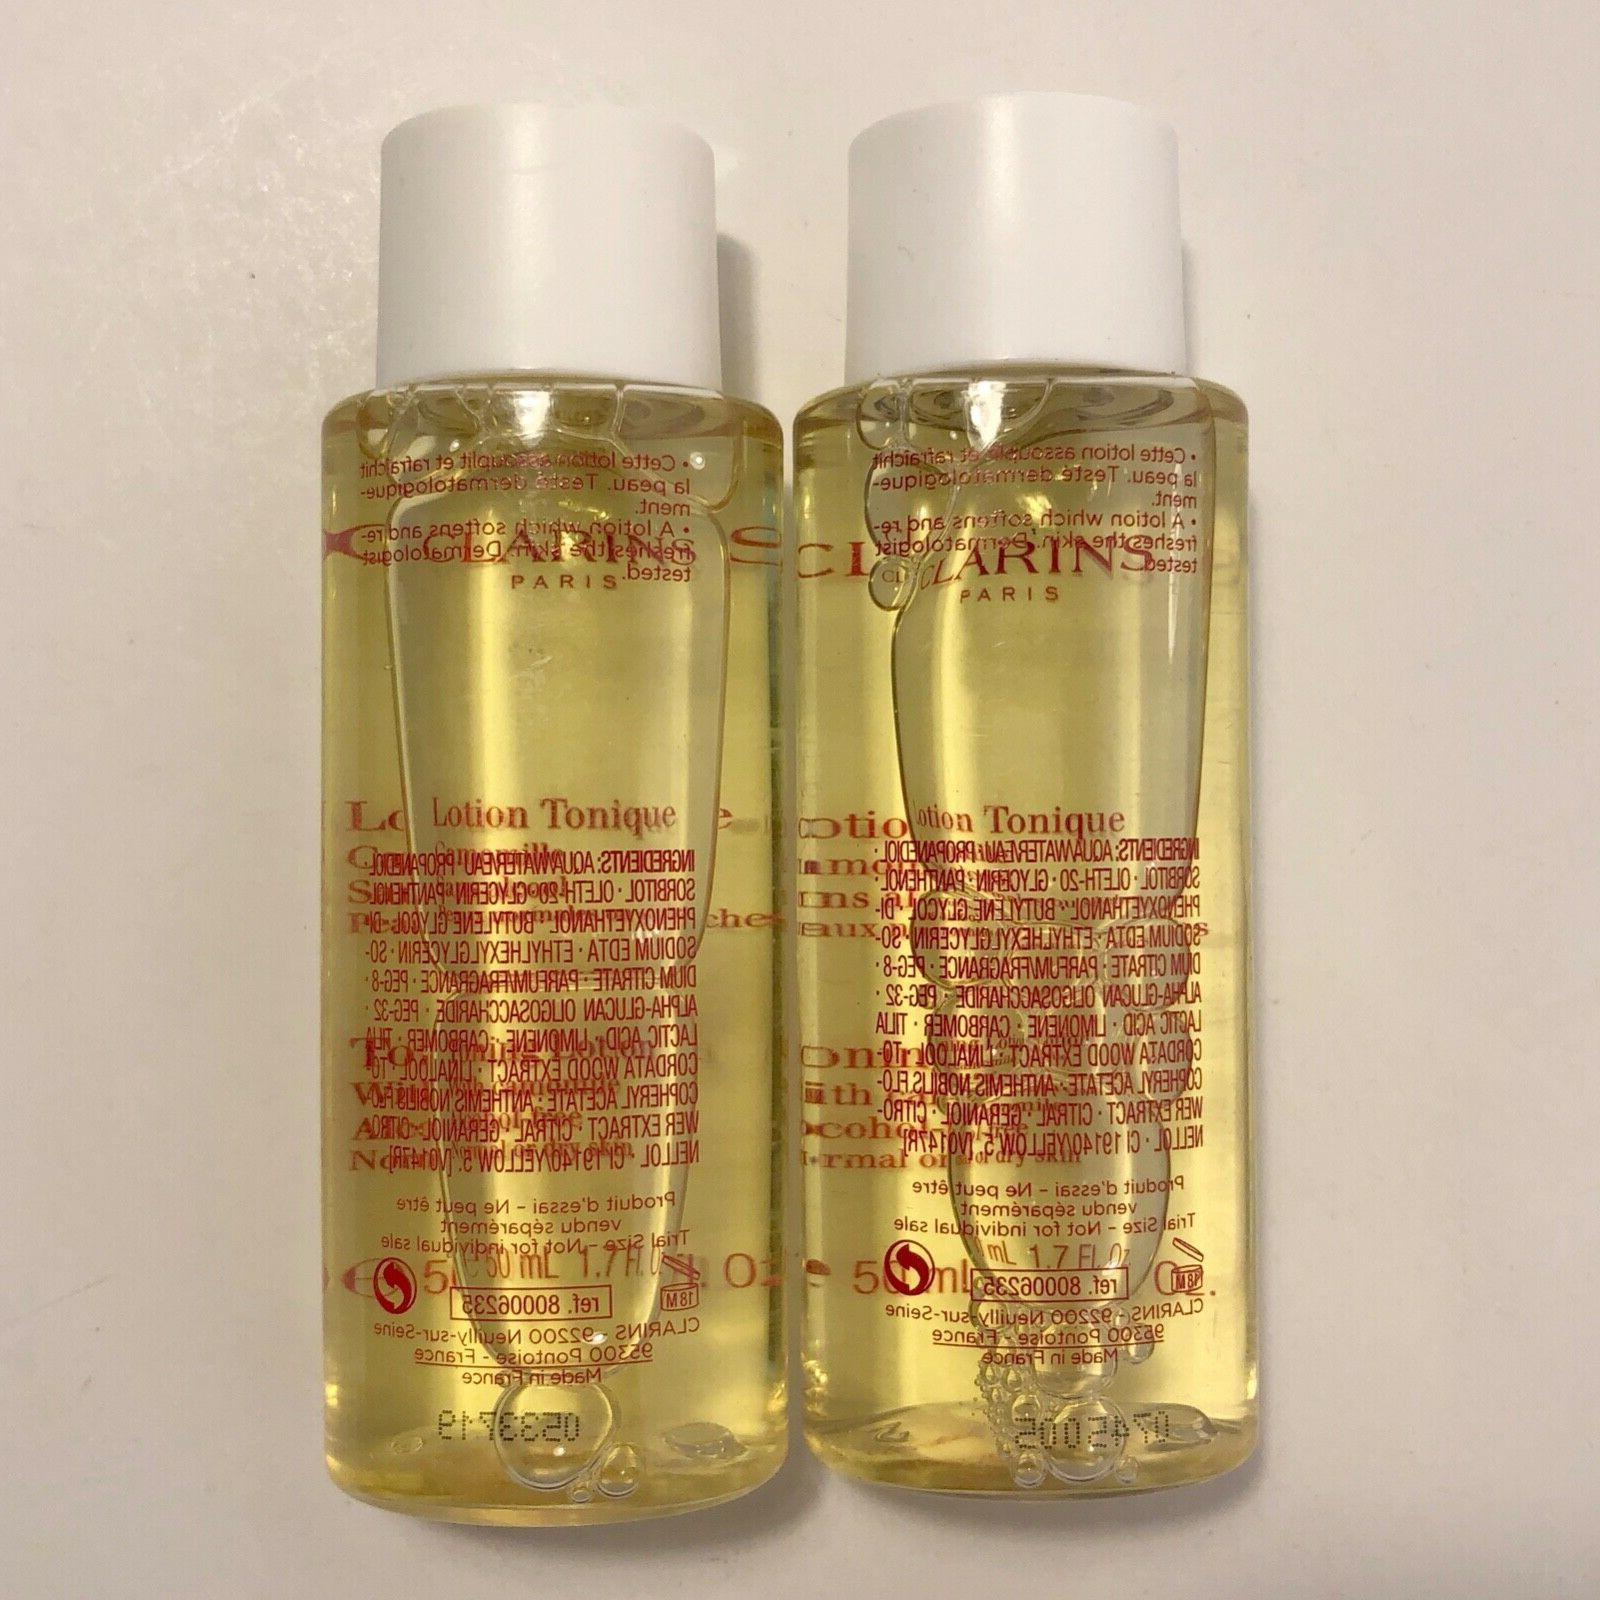 NEW CLARINS Toning Lotion with x2